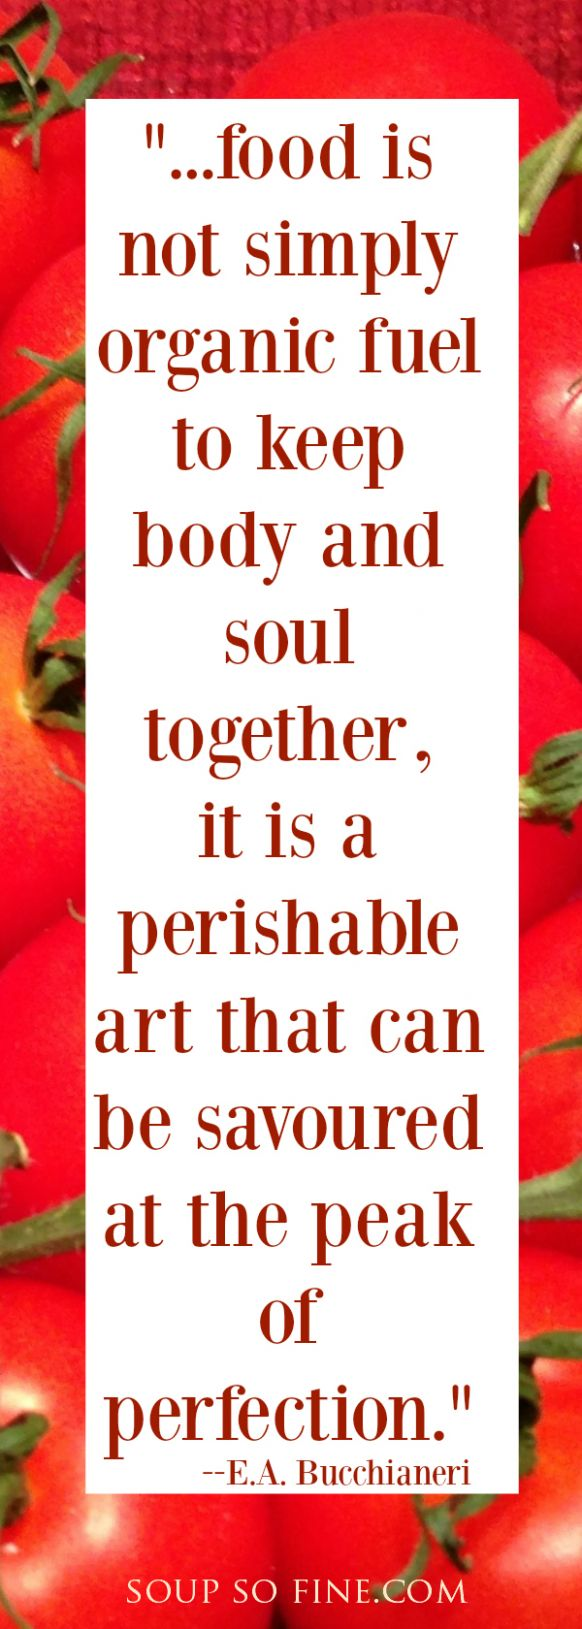 Delectable Vegetable Soup Recipes - Soup Recipes Quotes